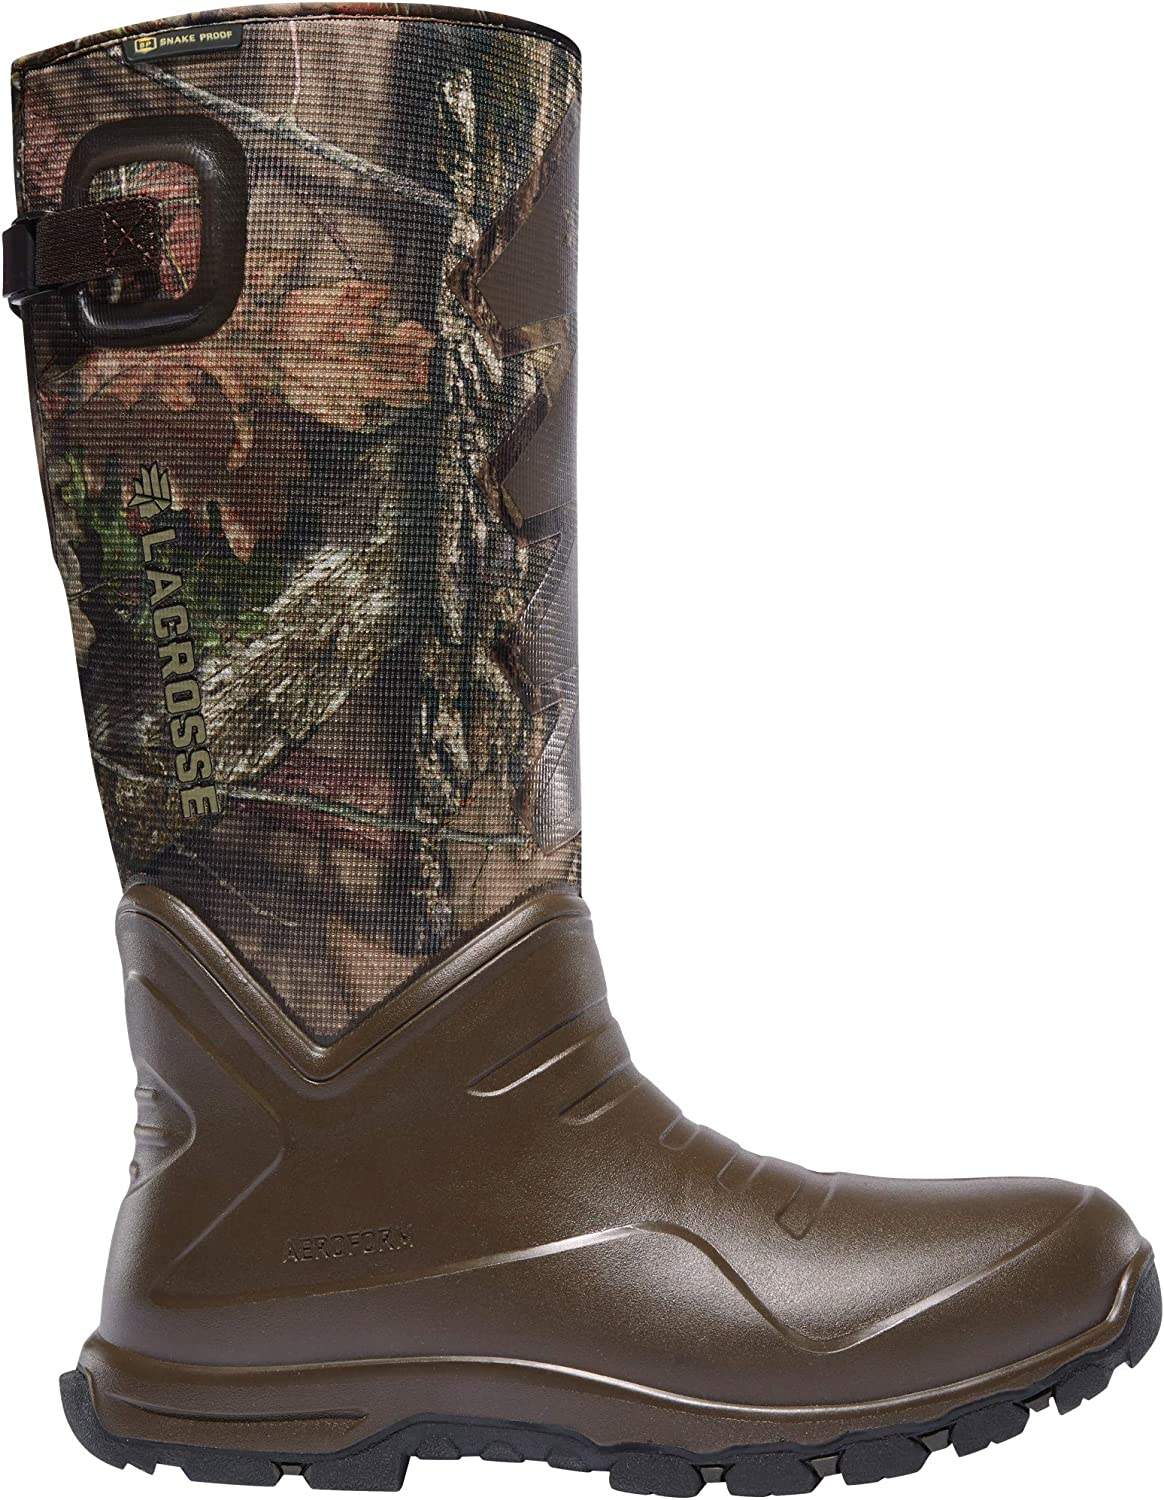 "LaCrosse Men's Aerohead Sport Snake Boot 17"" Mossy Oak Break-up Country Hunting Shoes"